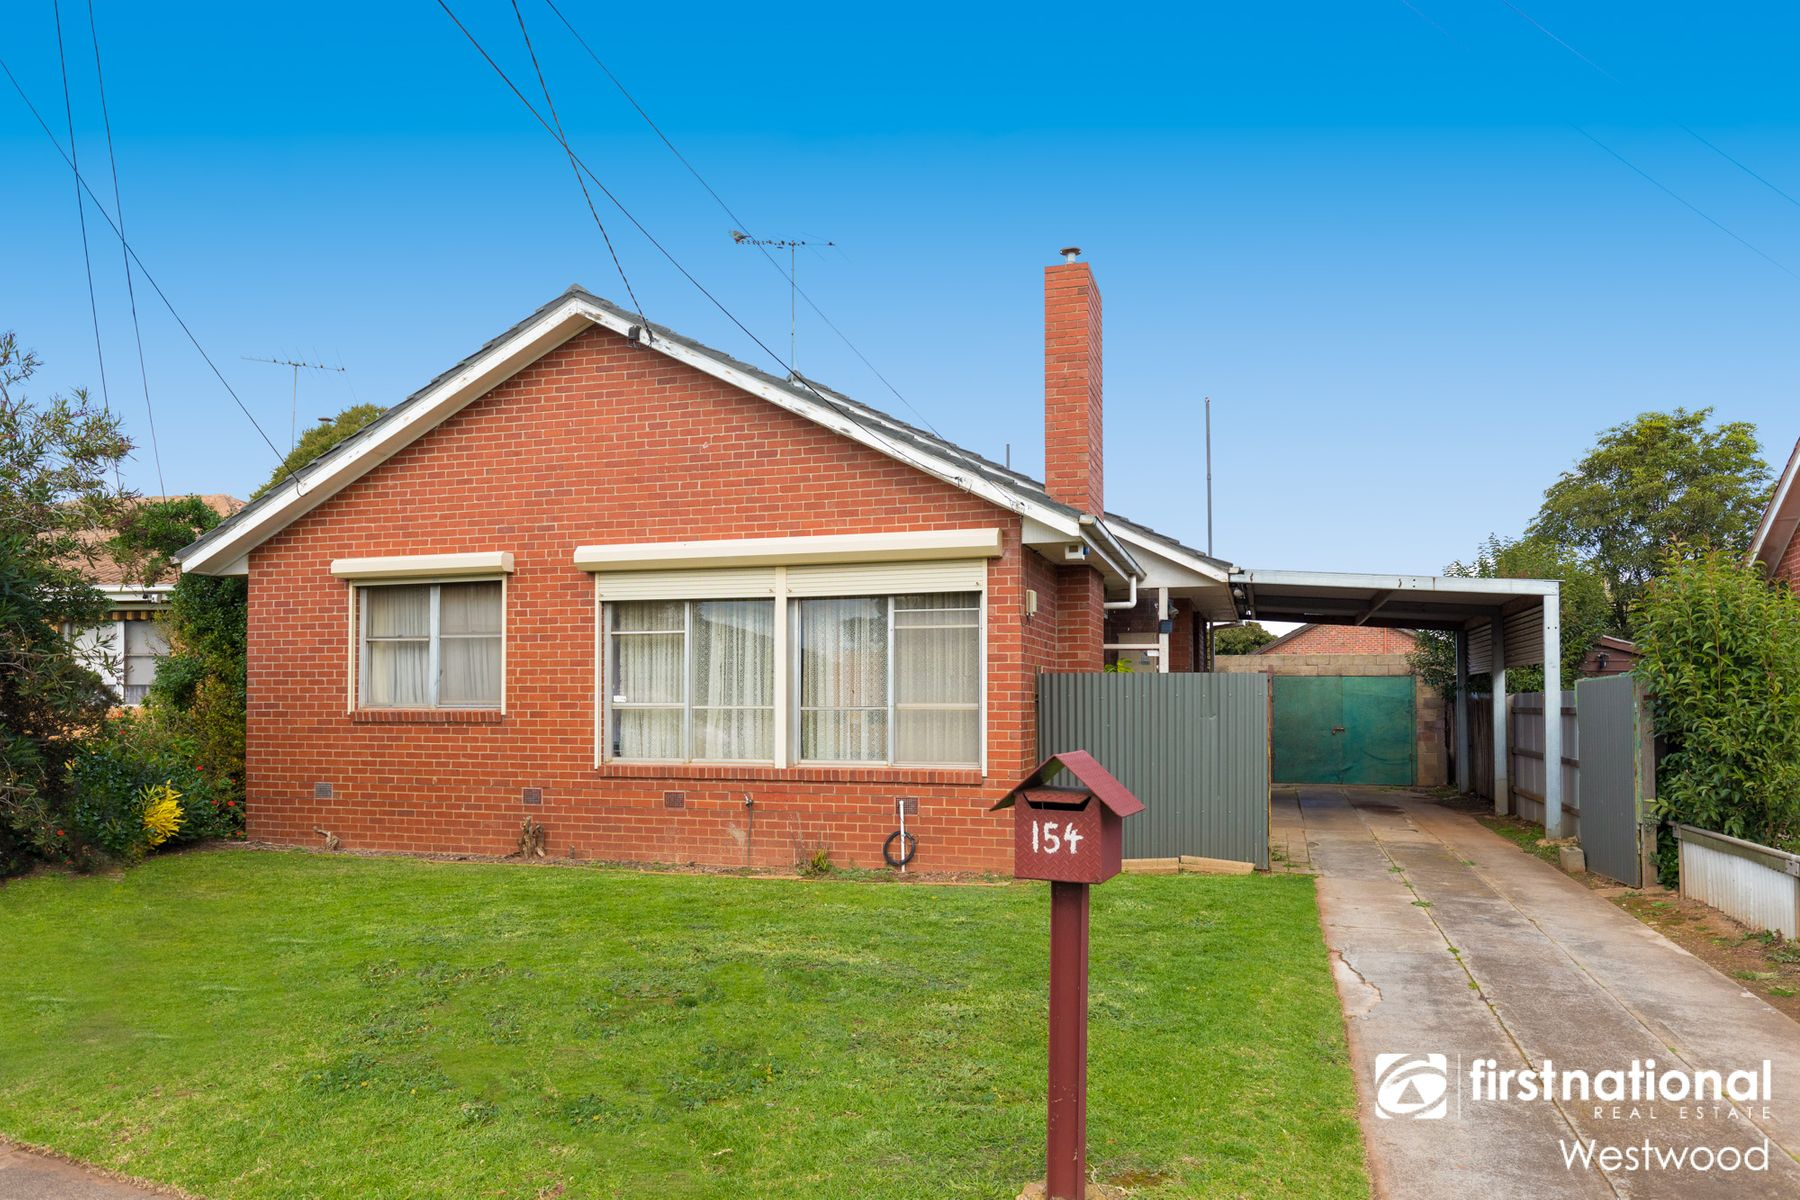 154 Shaws Rd, Werribee, VIC 3030